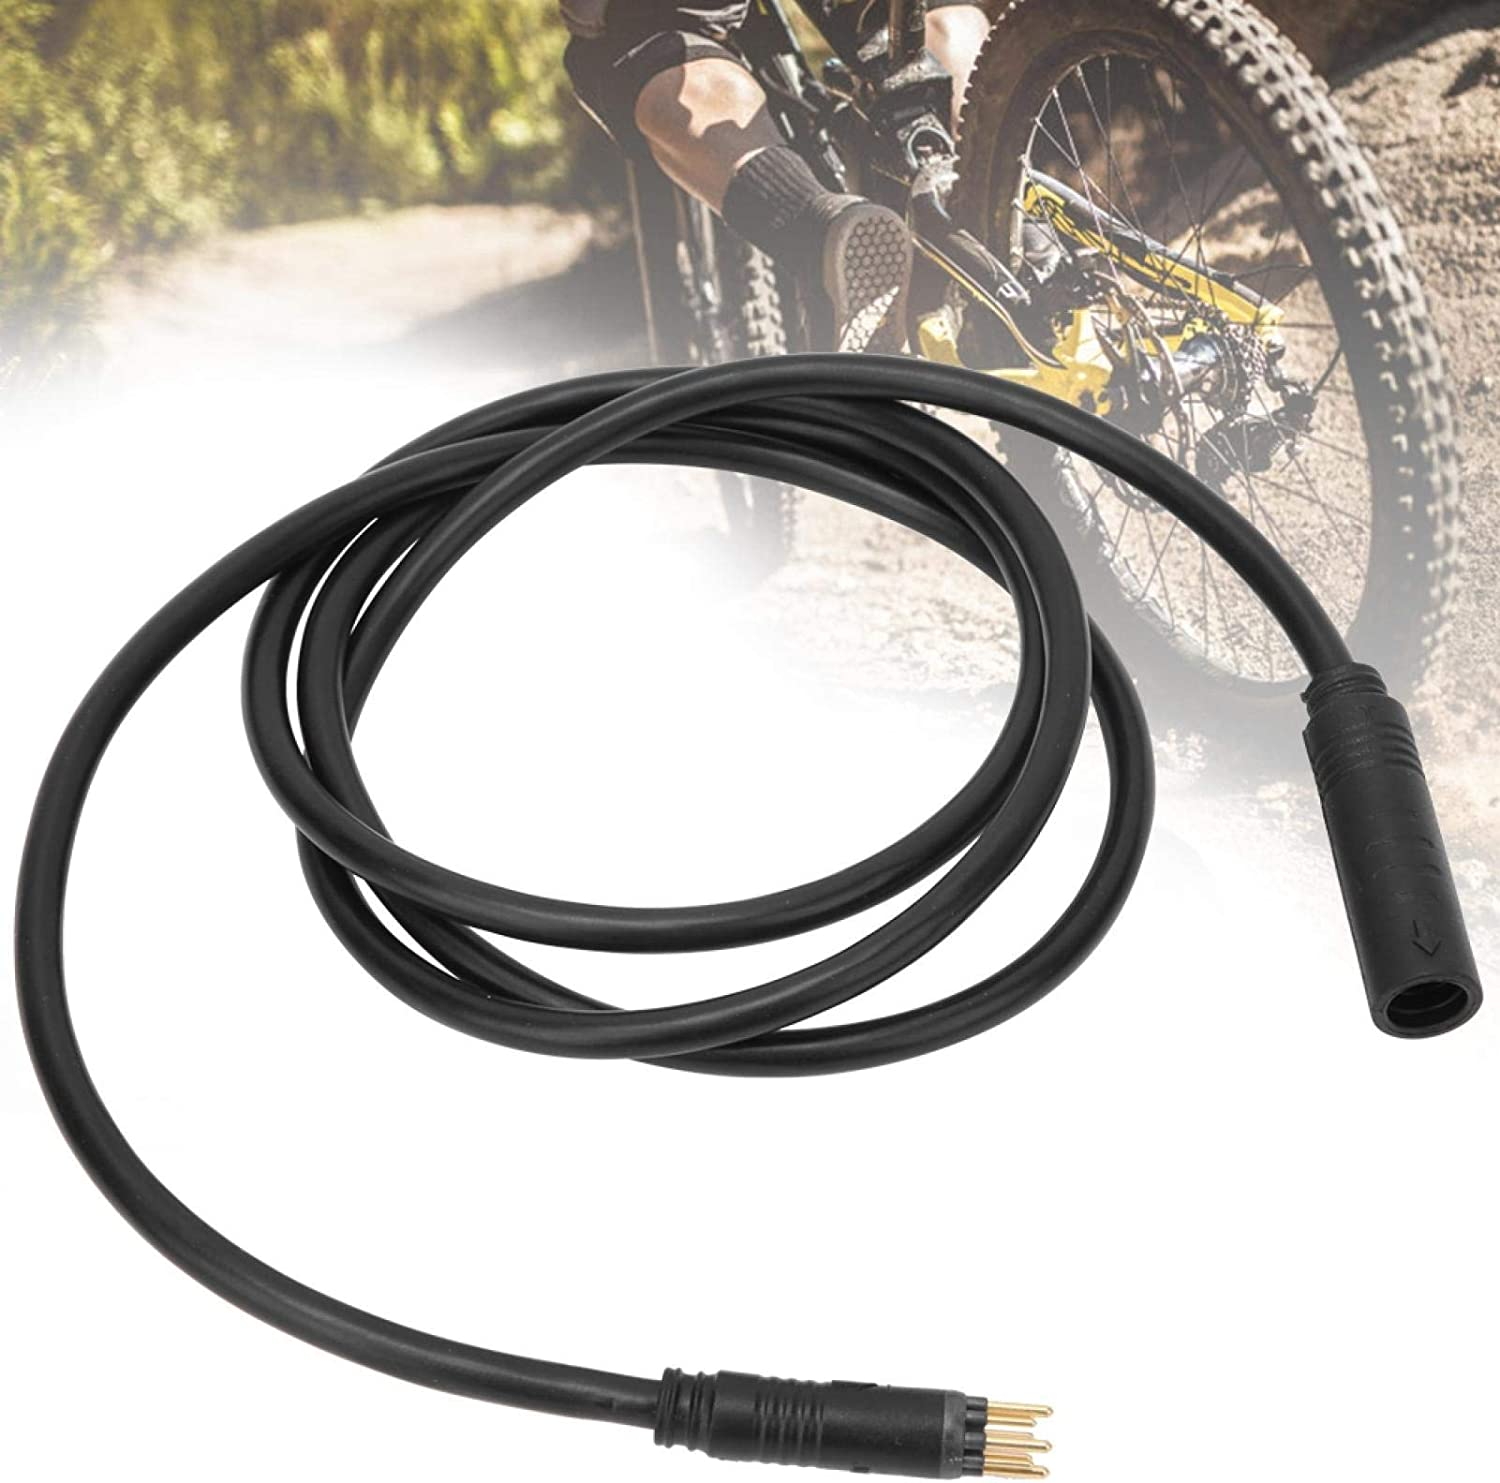 Germerse Bike Motor NEW before selling ☆ Extension Pin Large discharge sale Cable 9